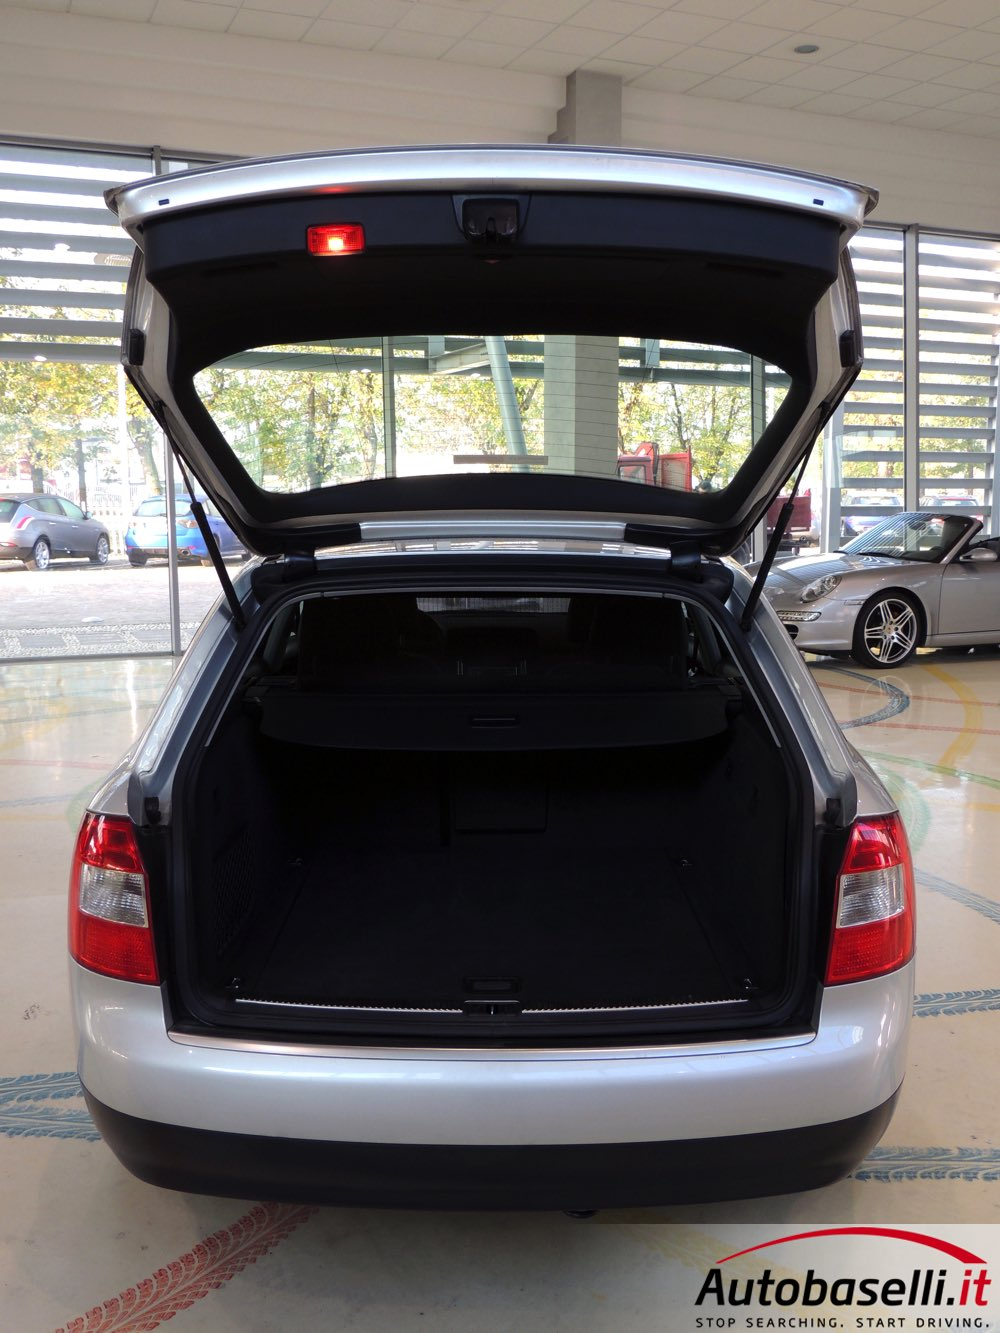 audi a4 avant 1 9 tdi 130 cv climatizzatore bi zona. Black Bedroom Furniture Sets. Home Design Ideas